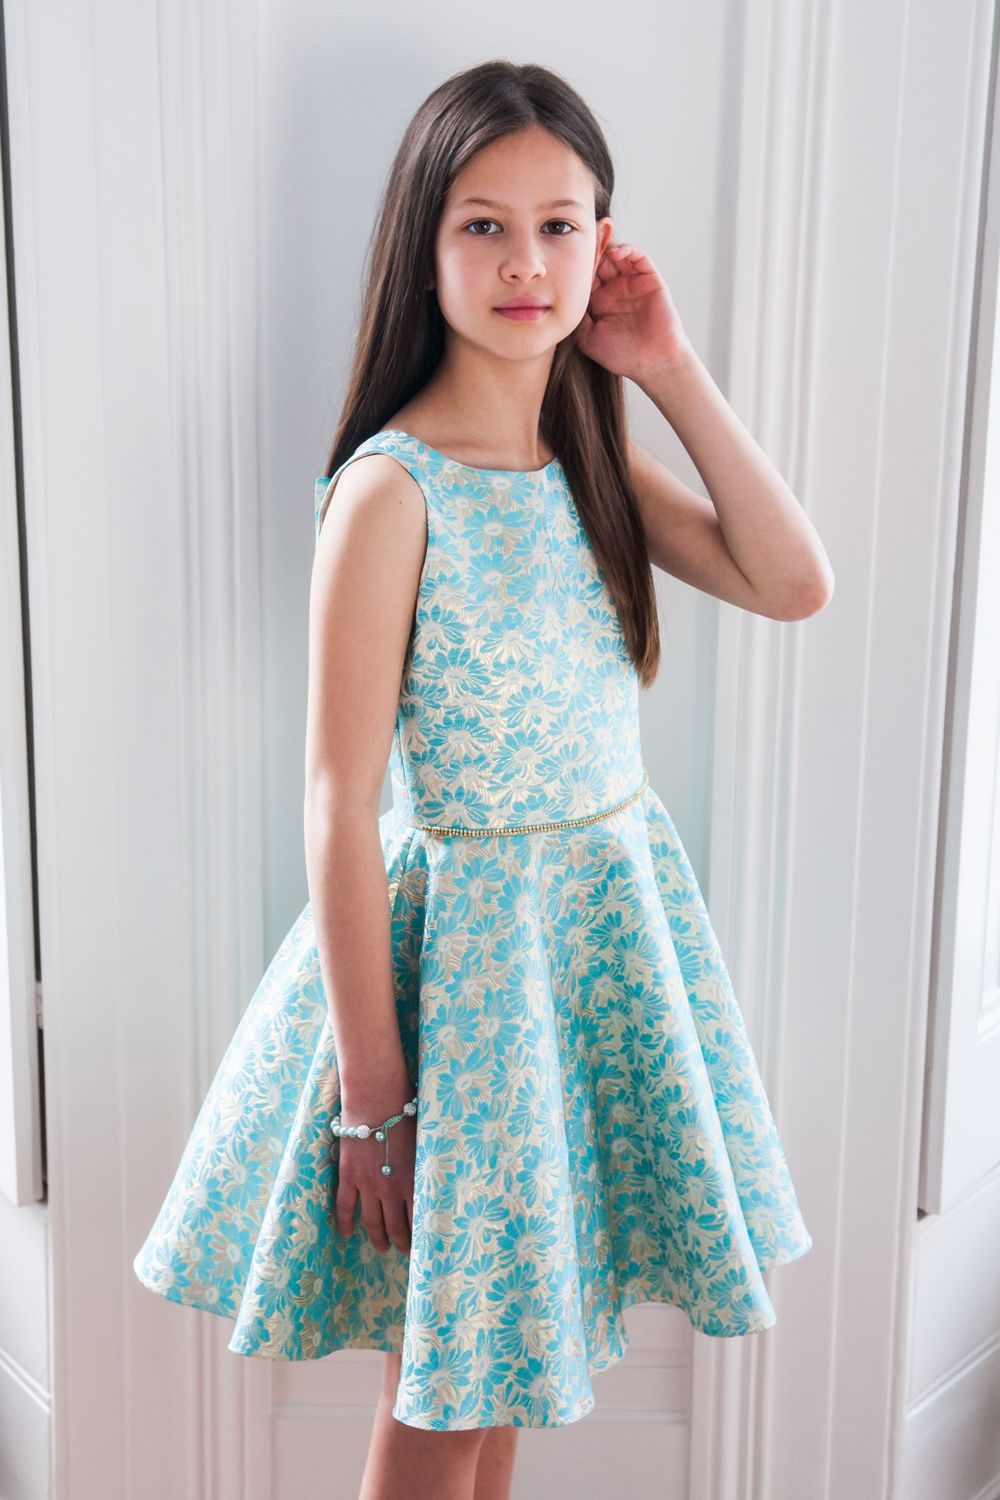 Turquoise Floral Party Dress | Turquoise, Floral and Girls